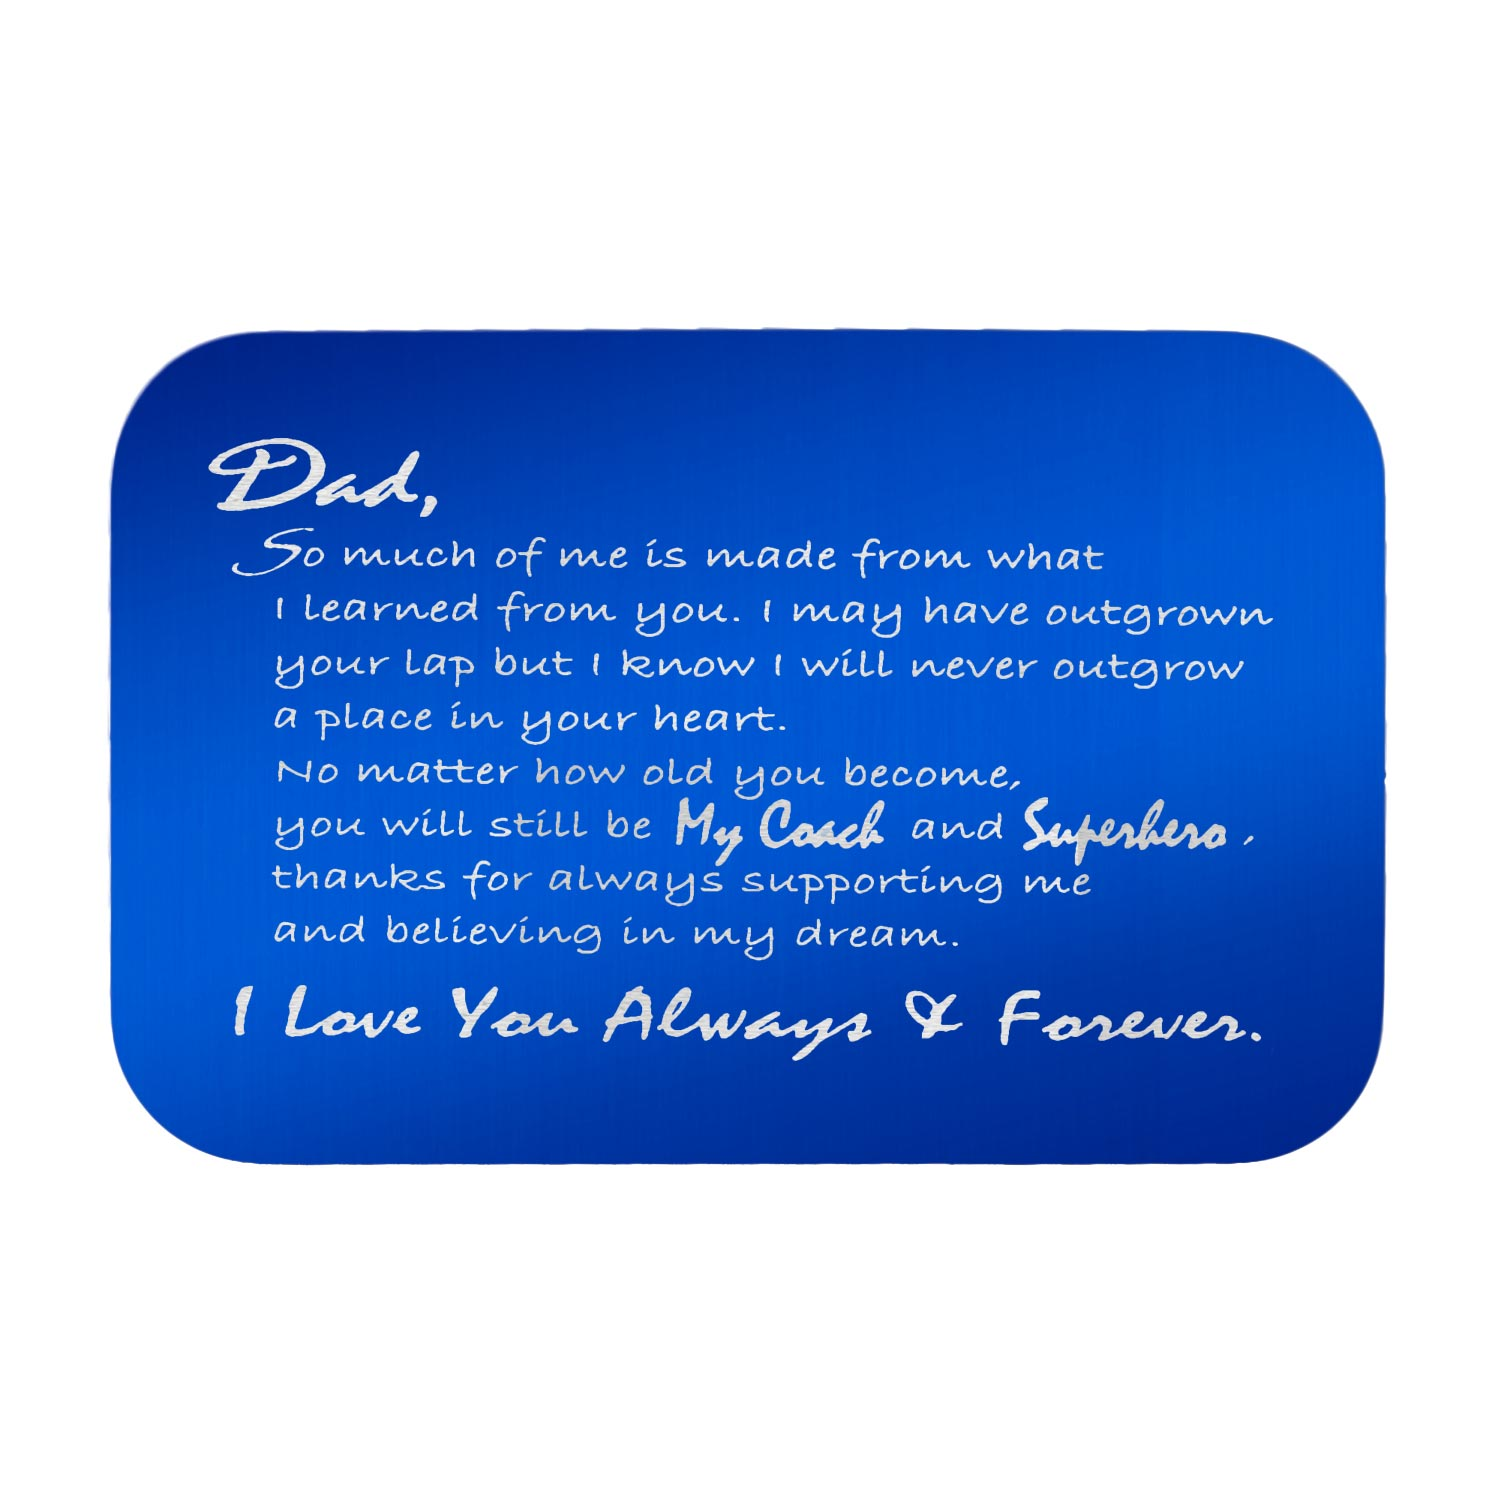 Stainless Steel Engraved Personalized Text Superhero Coach Dad Wallet Card Father\'s Day Birthday Gift Blue